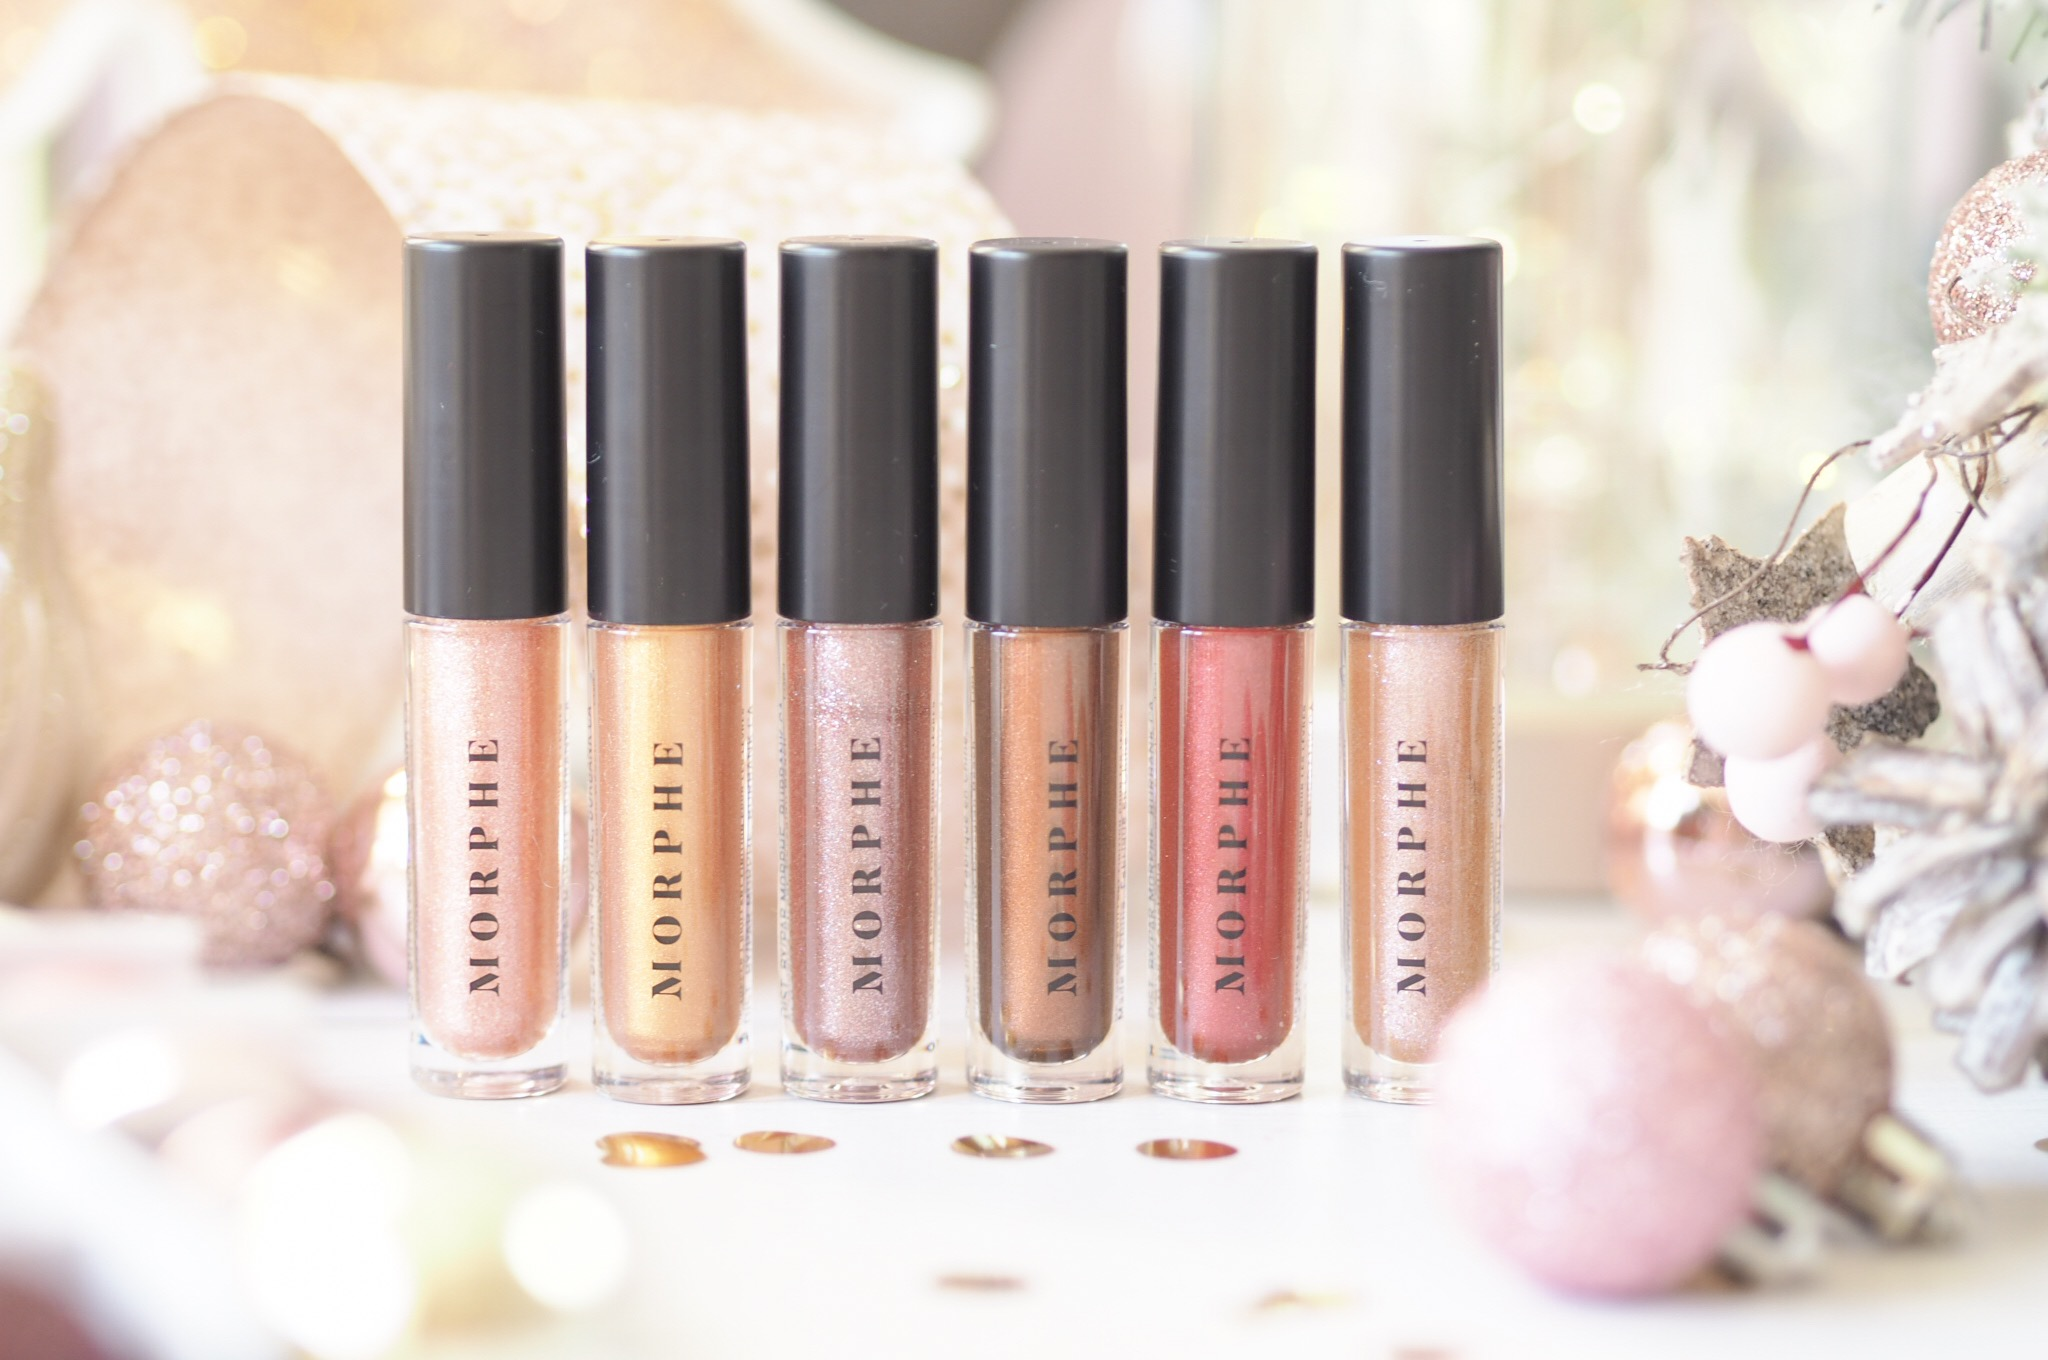 Morphe Molton Magic Lip Collection